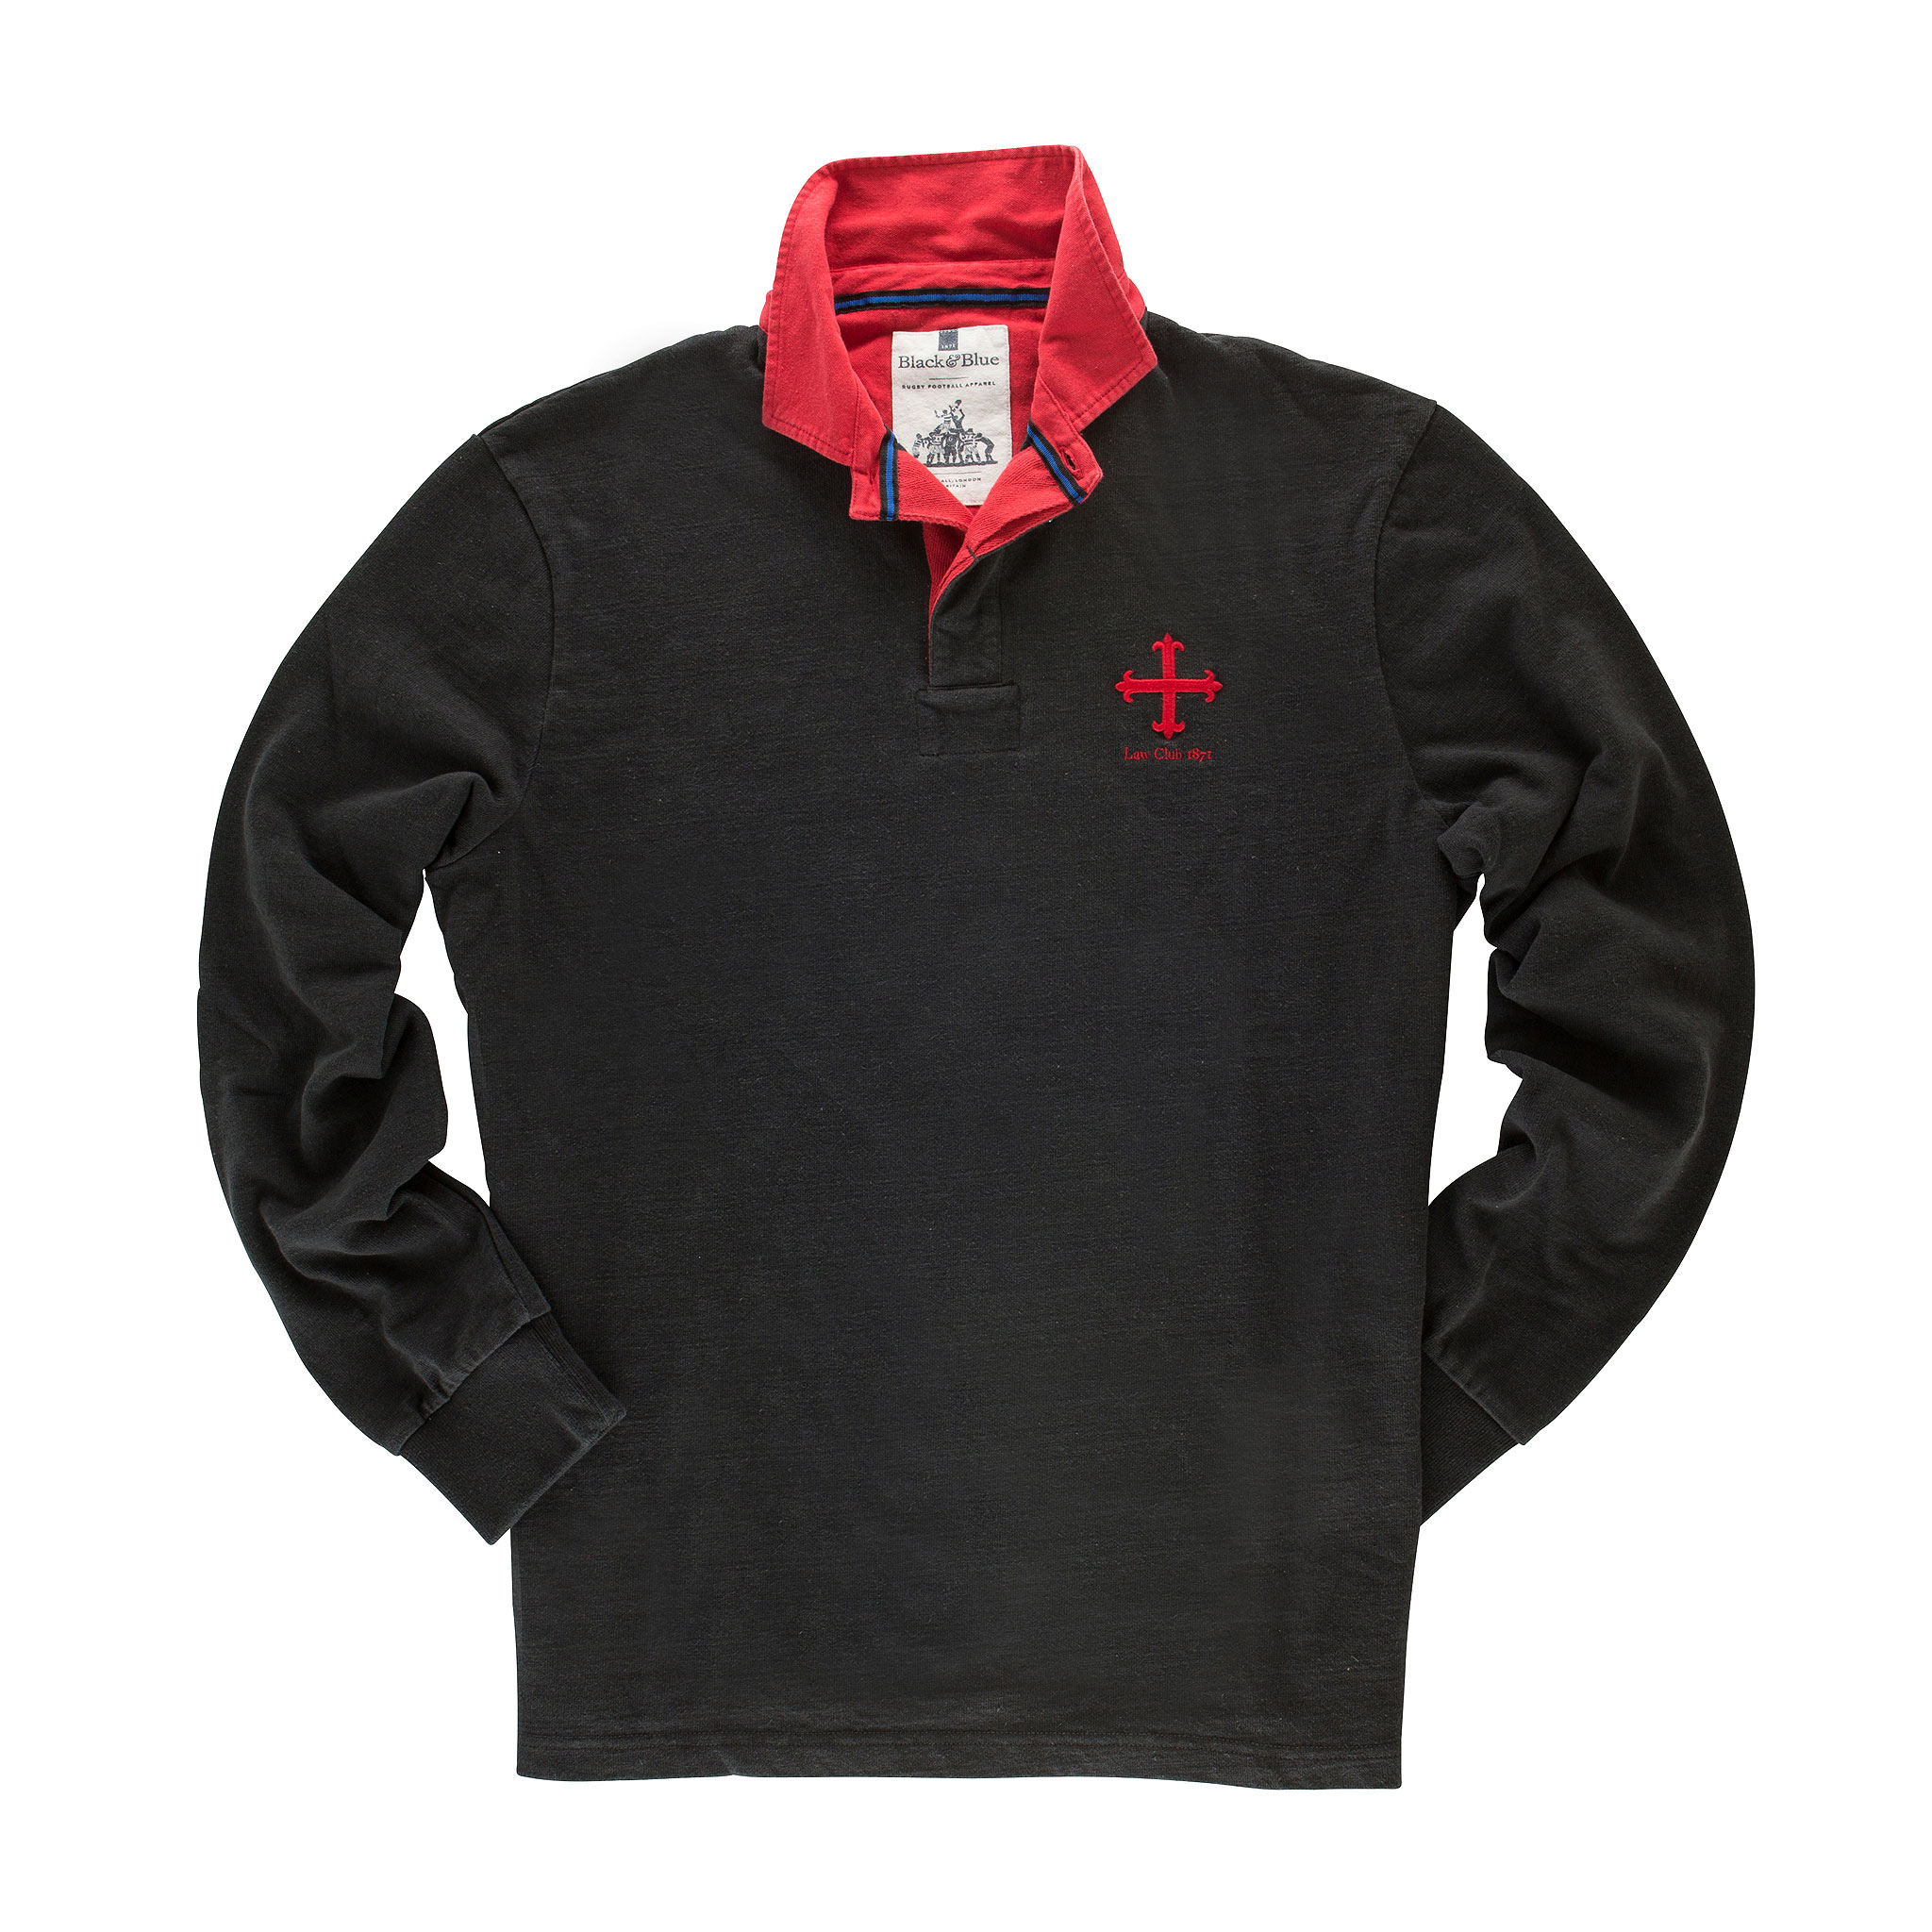 Law Club 1871 Rugby Shirt - front